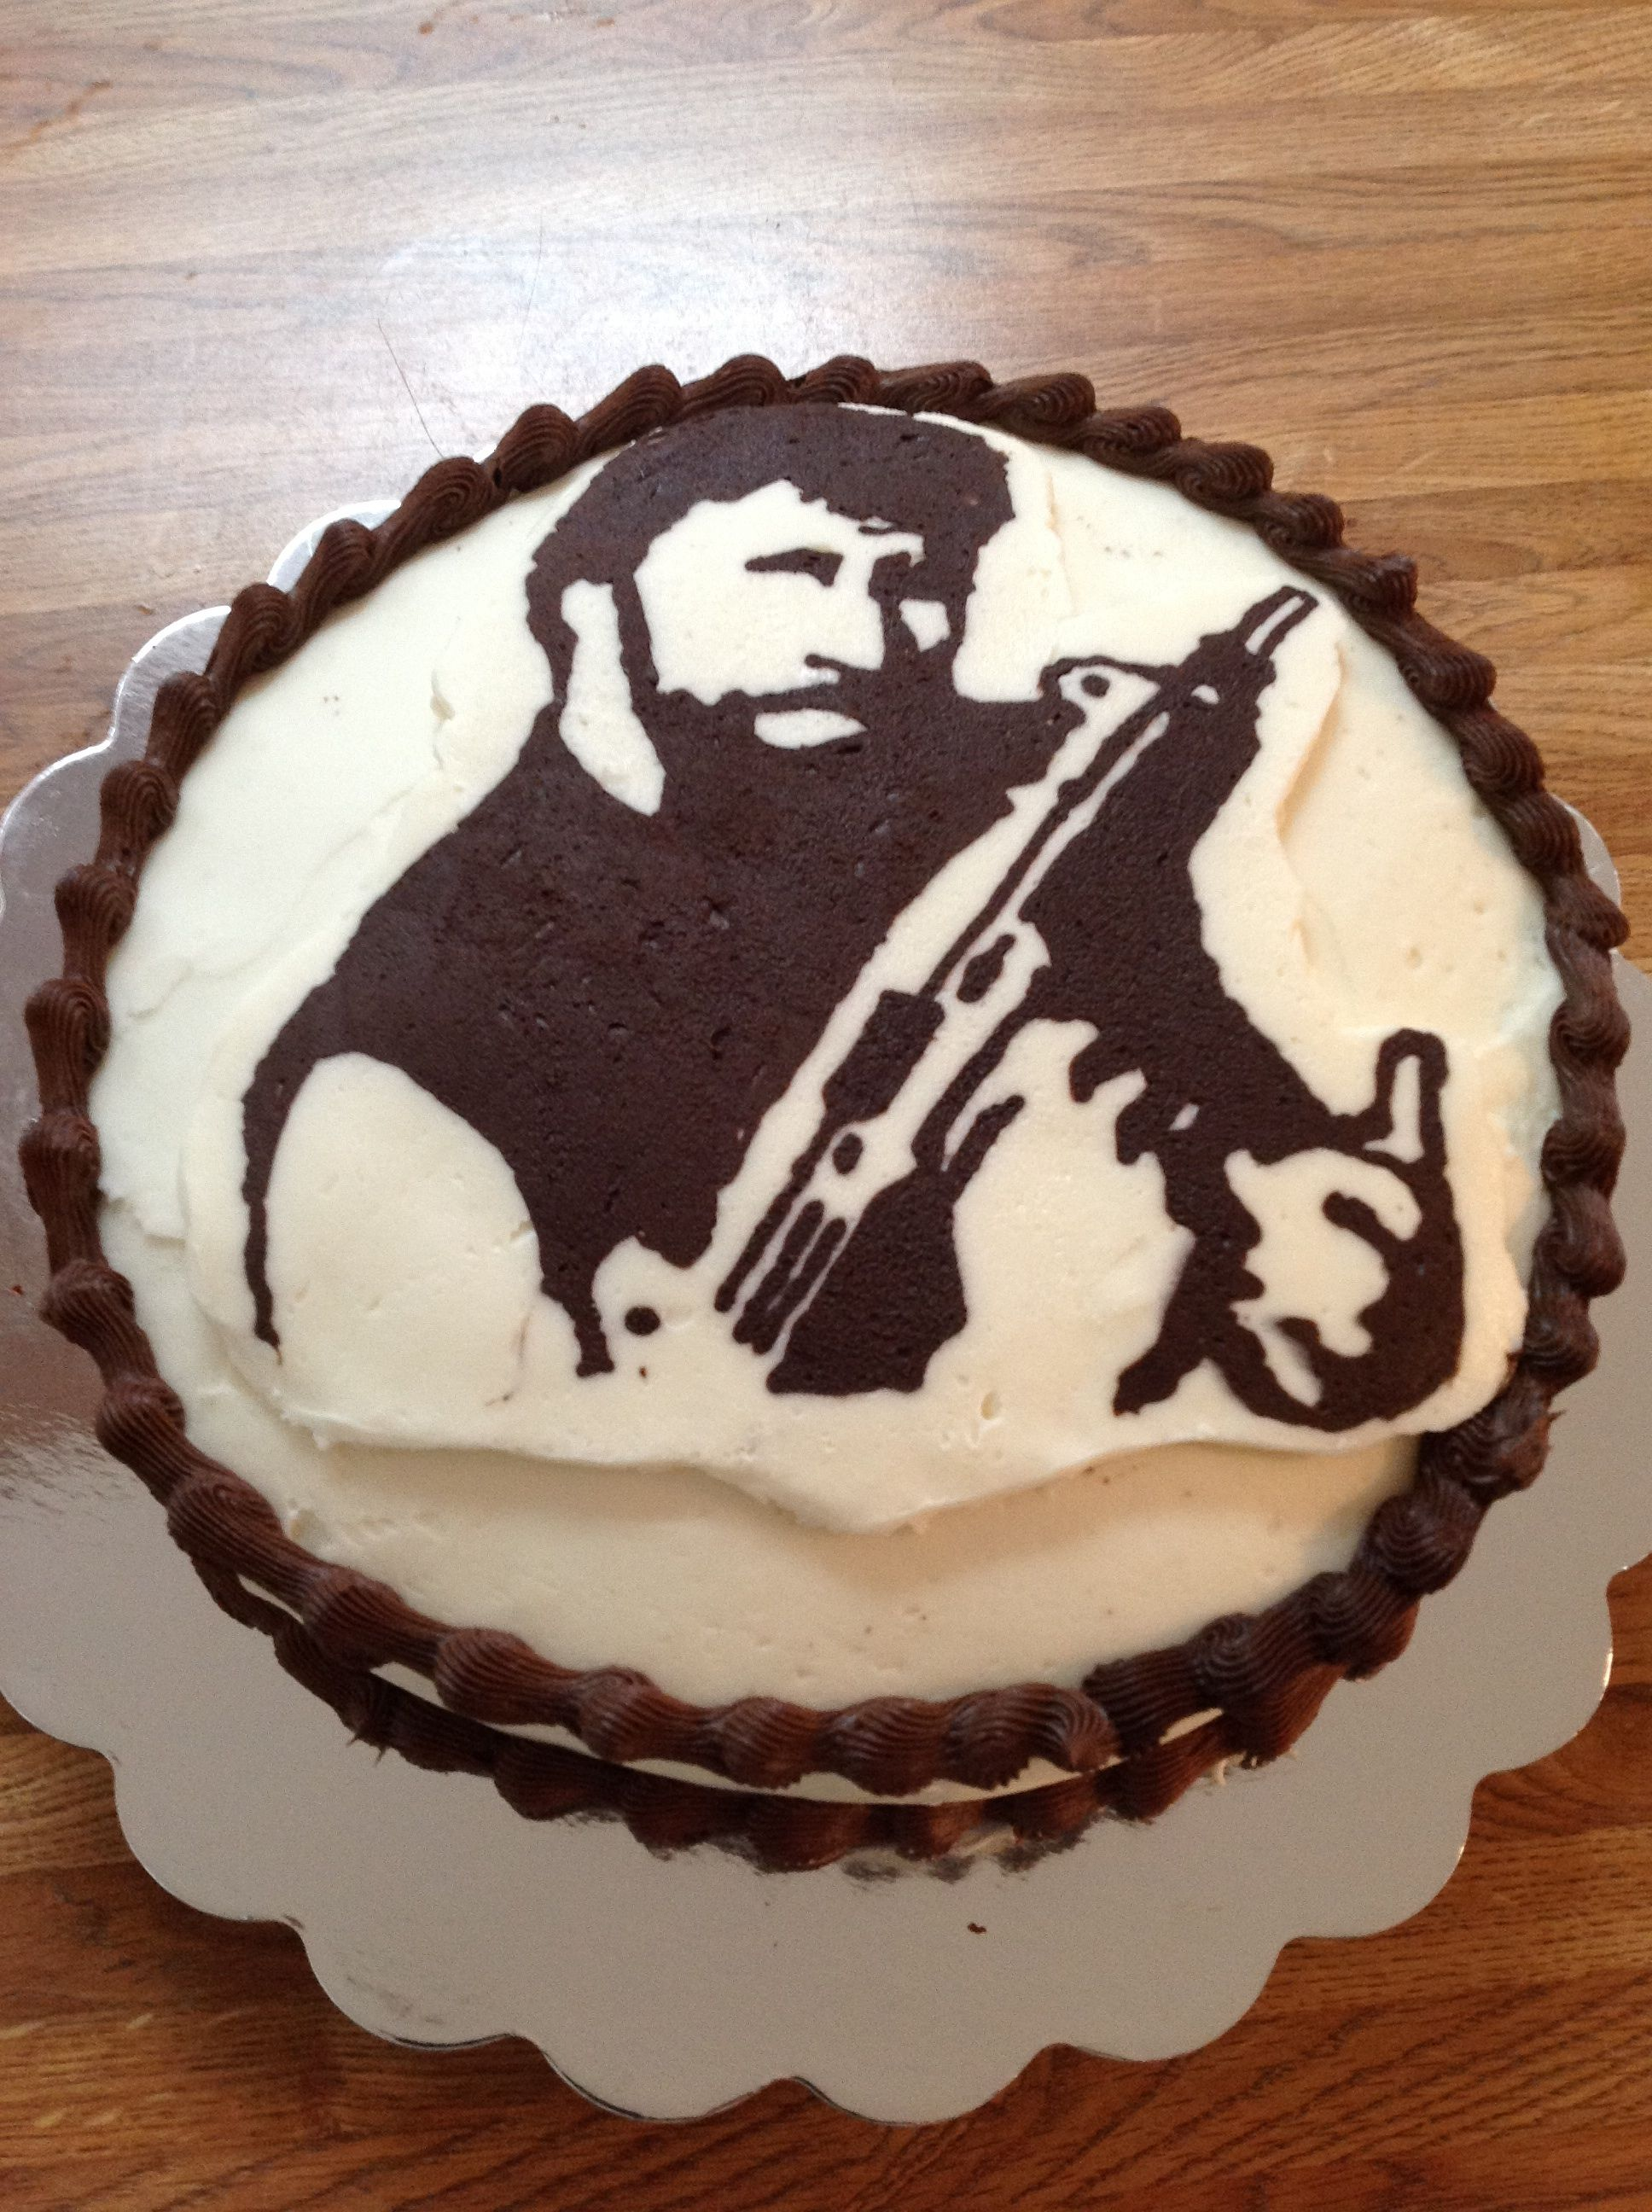 Liams Chuck Norris Birthday Cake Done by frosting and freezer